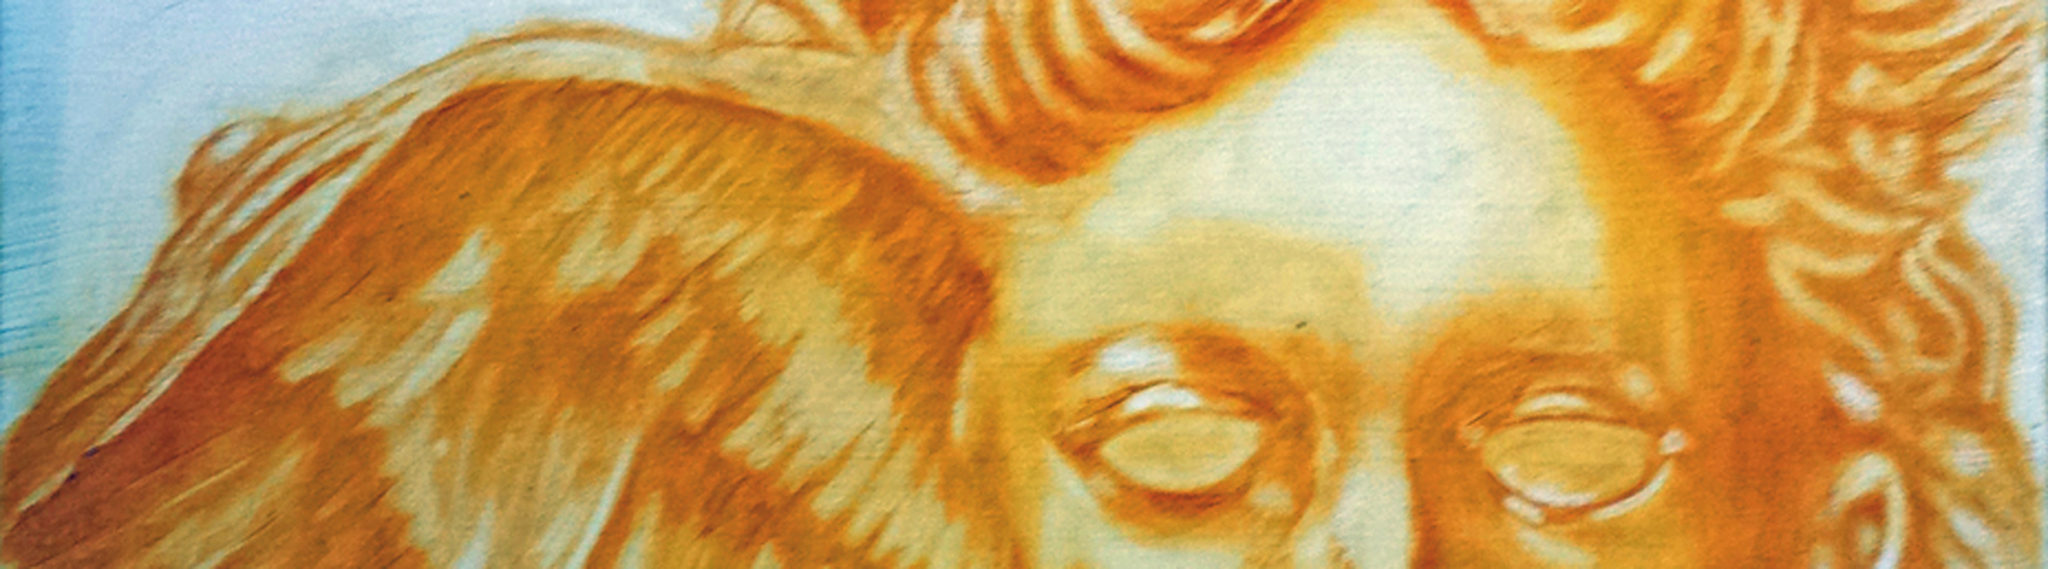 Hypnos Greek God of Sleep and Dreams. A painting by Minneapolis artist Roger Williamson